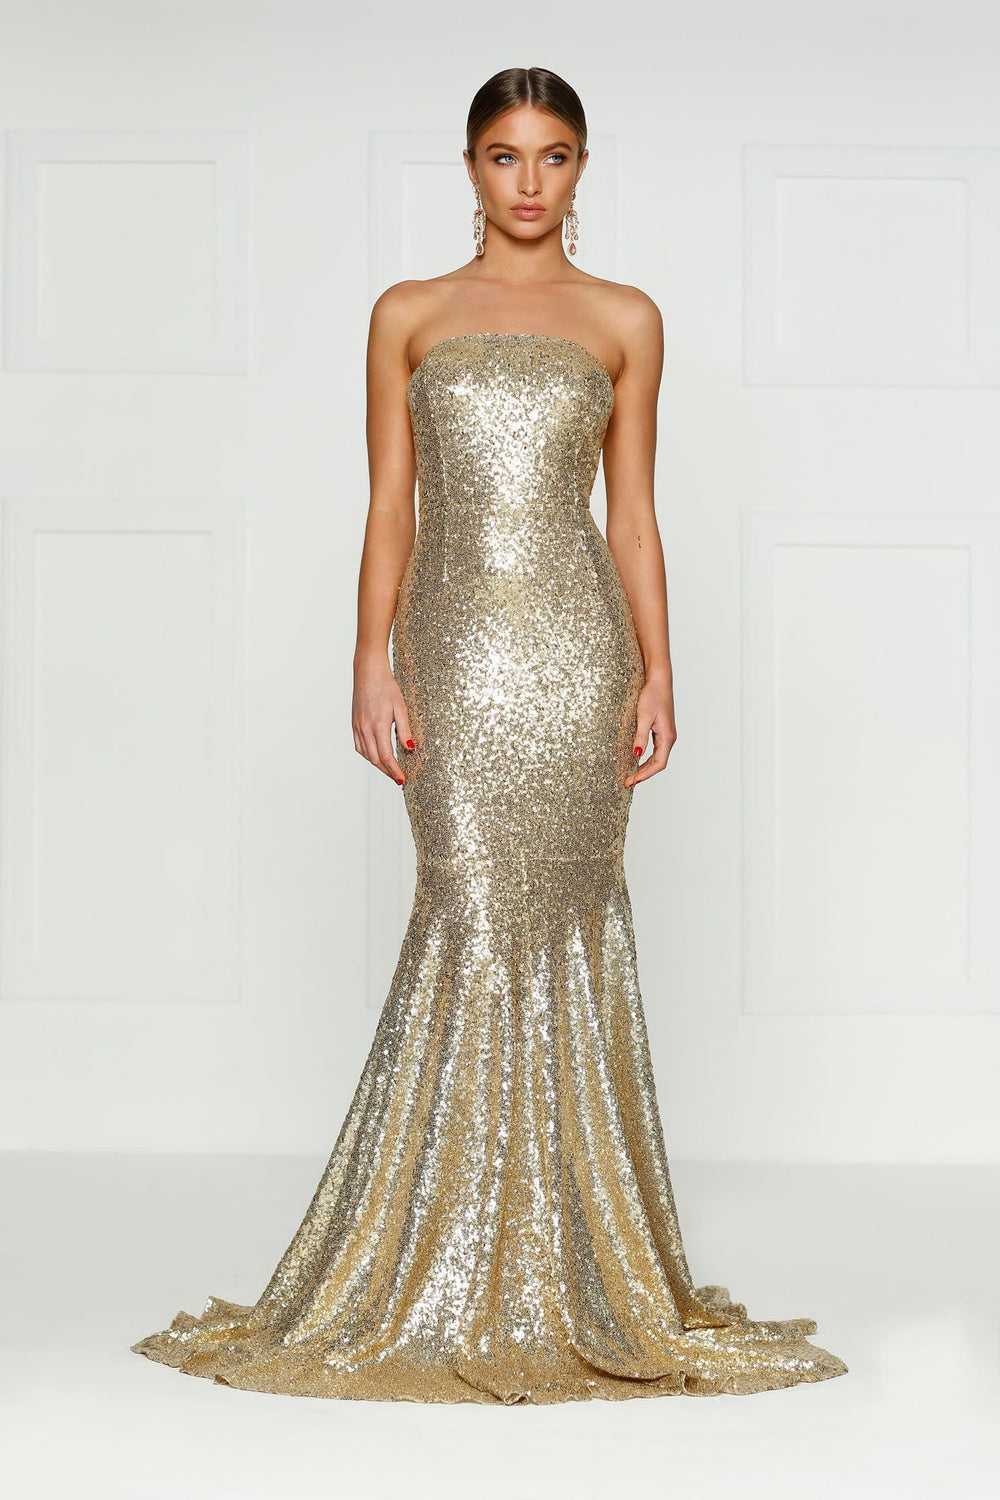 Nicoletta - Gold Strapless Sequin Gown with Mermaid Train